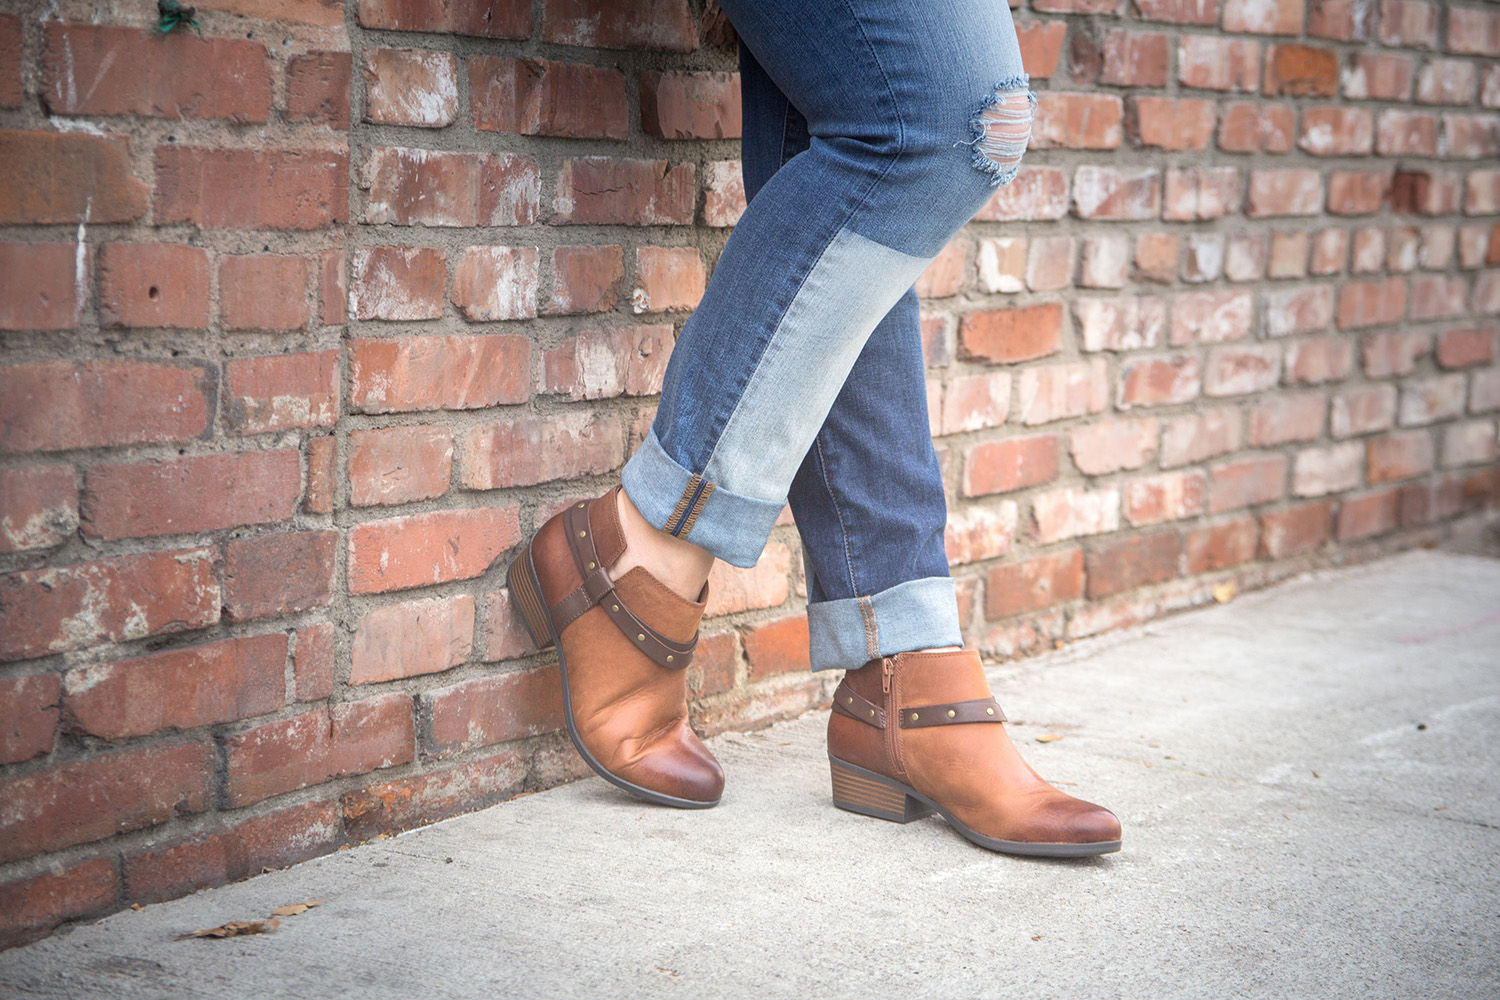 Looking for casual fall outfit inspiration? Patched Denim and Comfortable Booties are perfect for everyday fall wear!